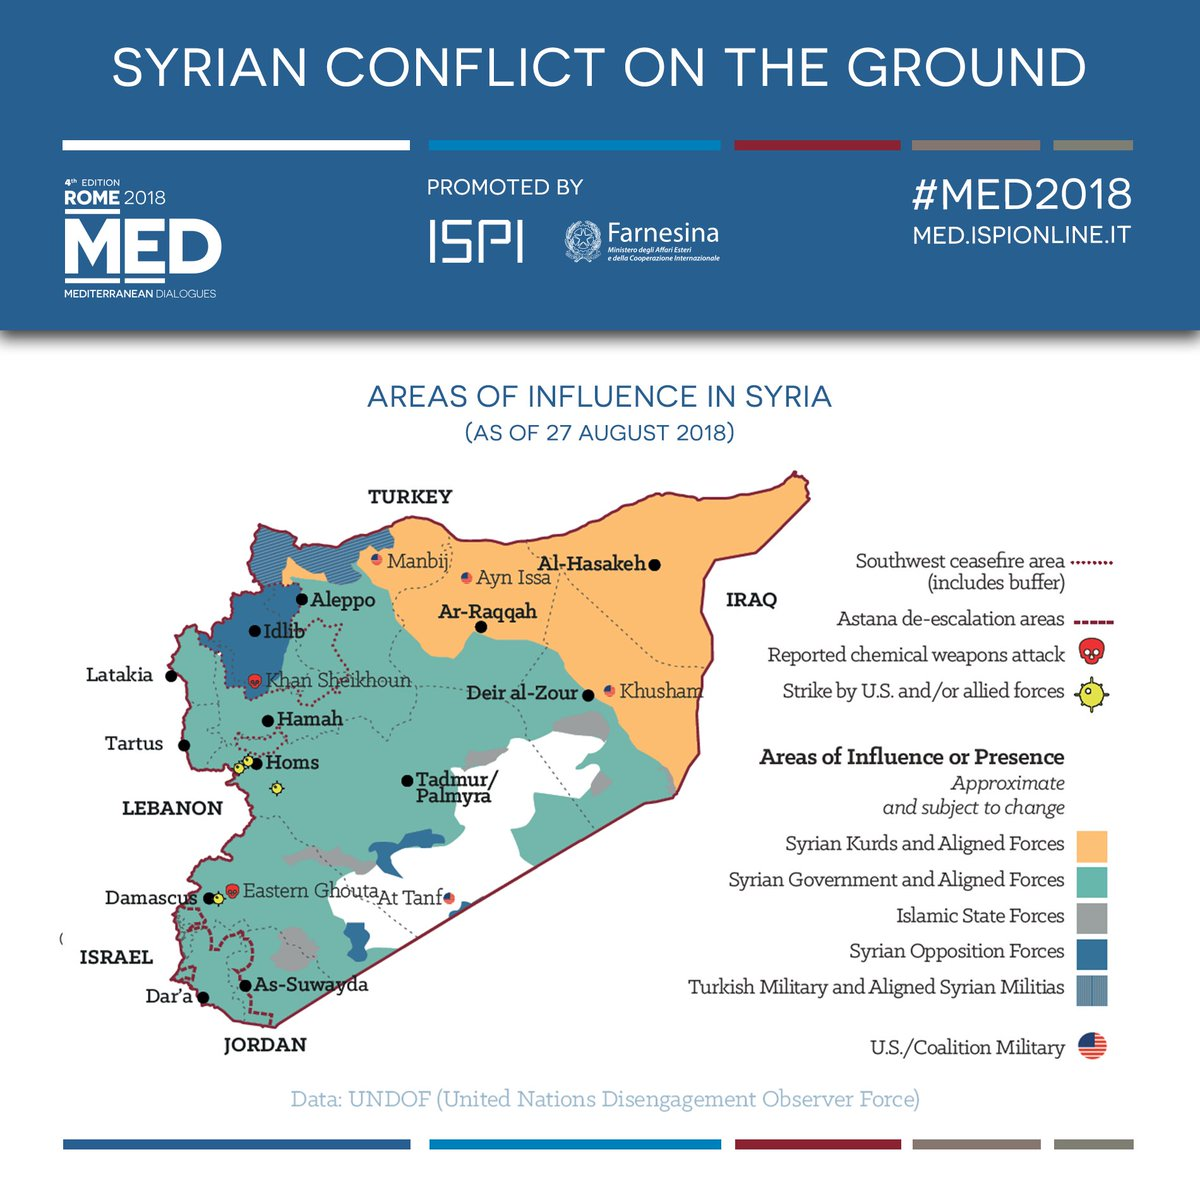 Syria's devastating 7 years-long war has left a trail of destruction, pain and a divided country in its wake. This graph shows some areas of influence. At #MED2018 we will discuss the issue here: https://t.co/VogIE1fD5j